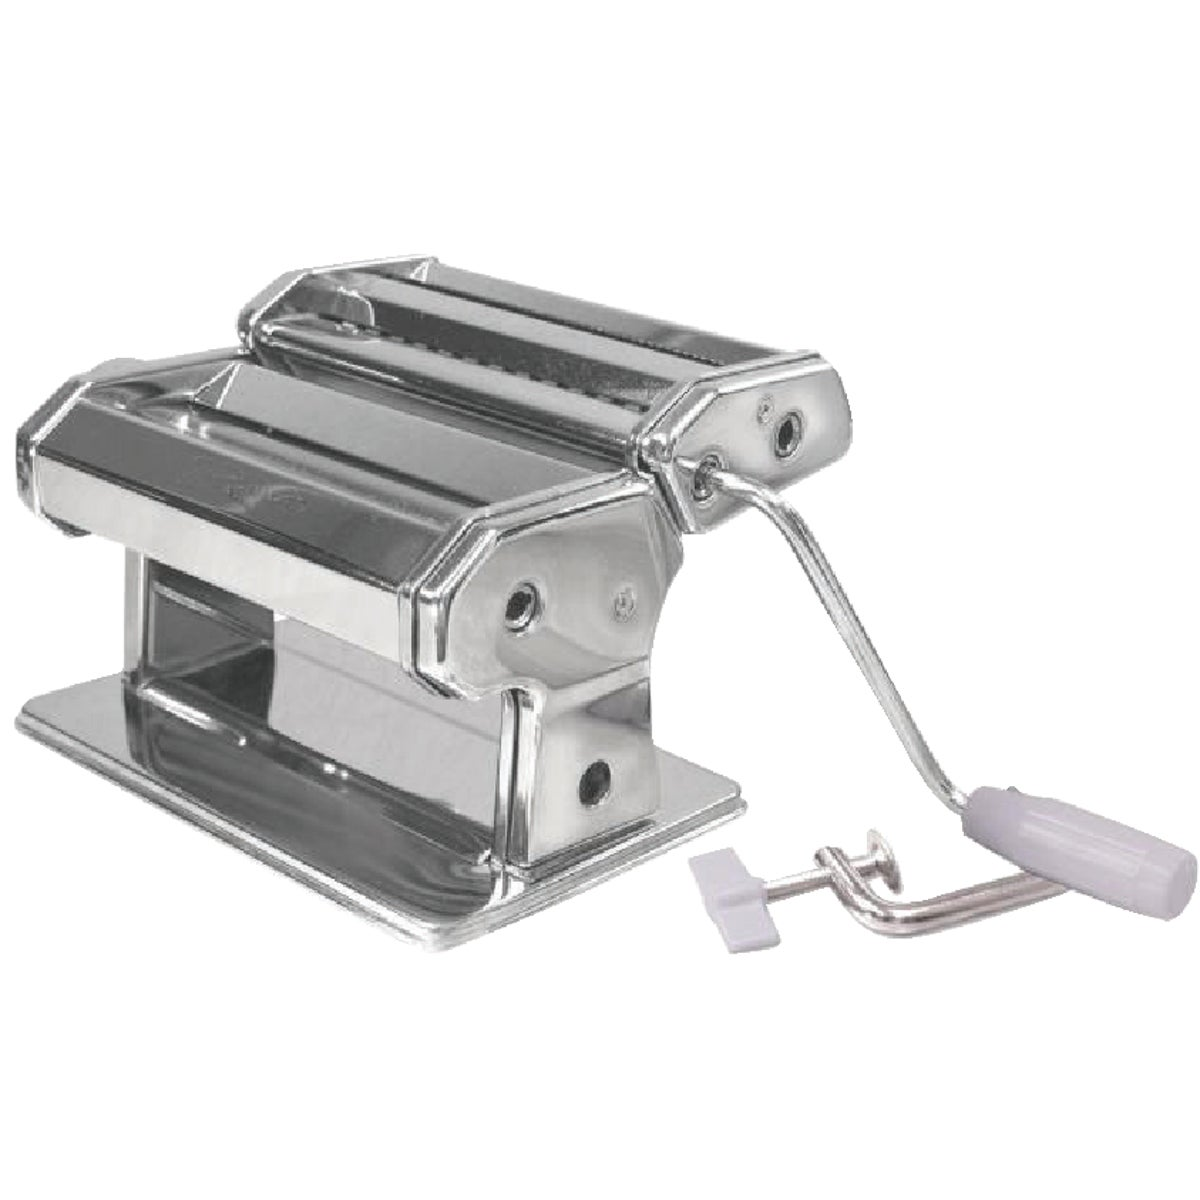 MANUAL PASTA MACHINE - 01-0201 by Weston Products